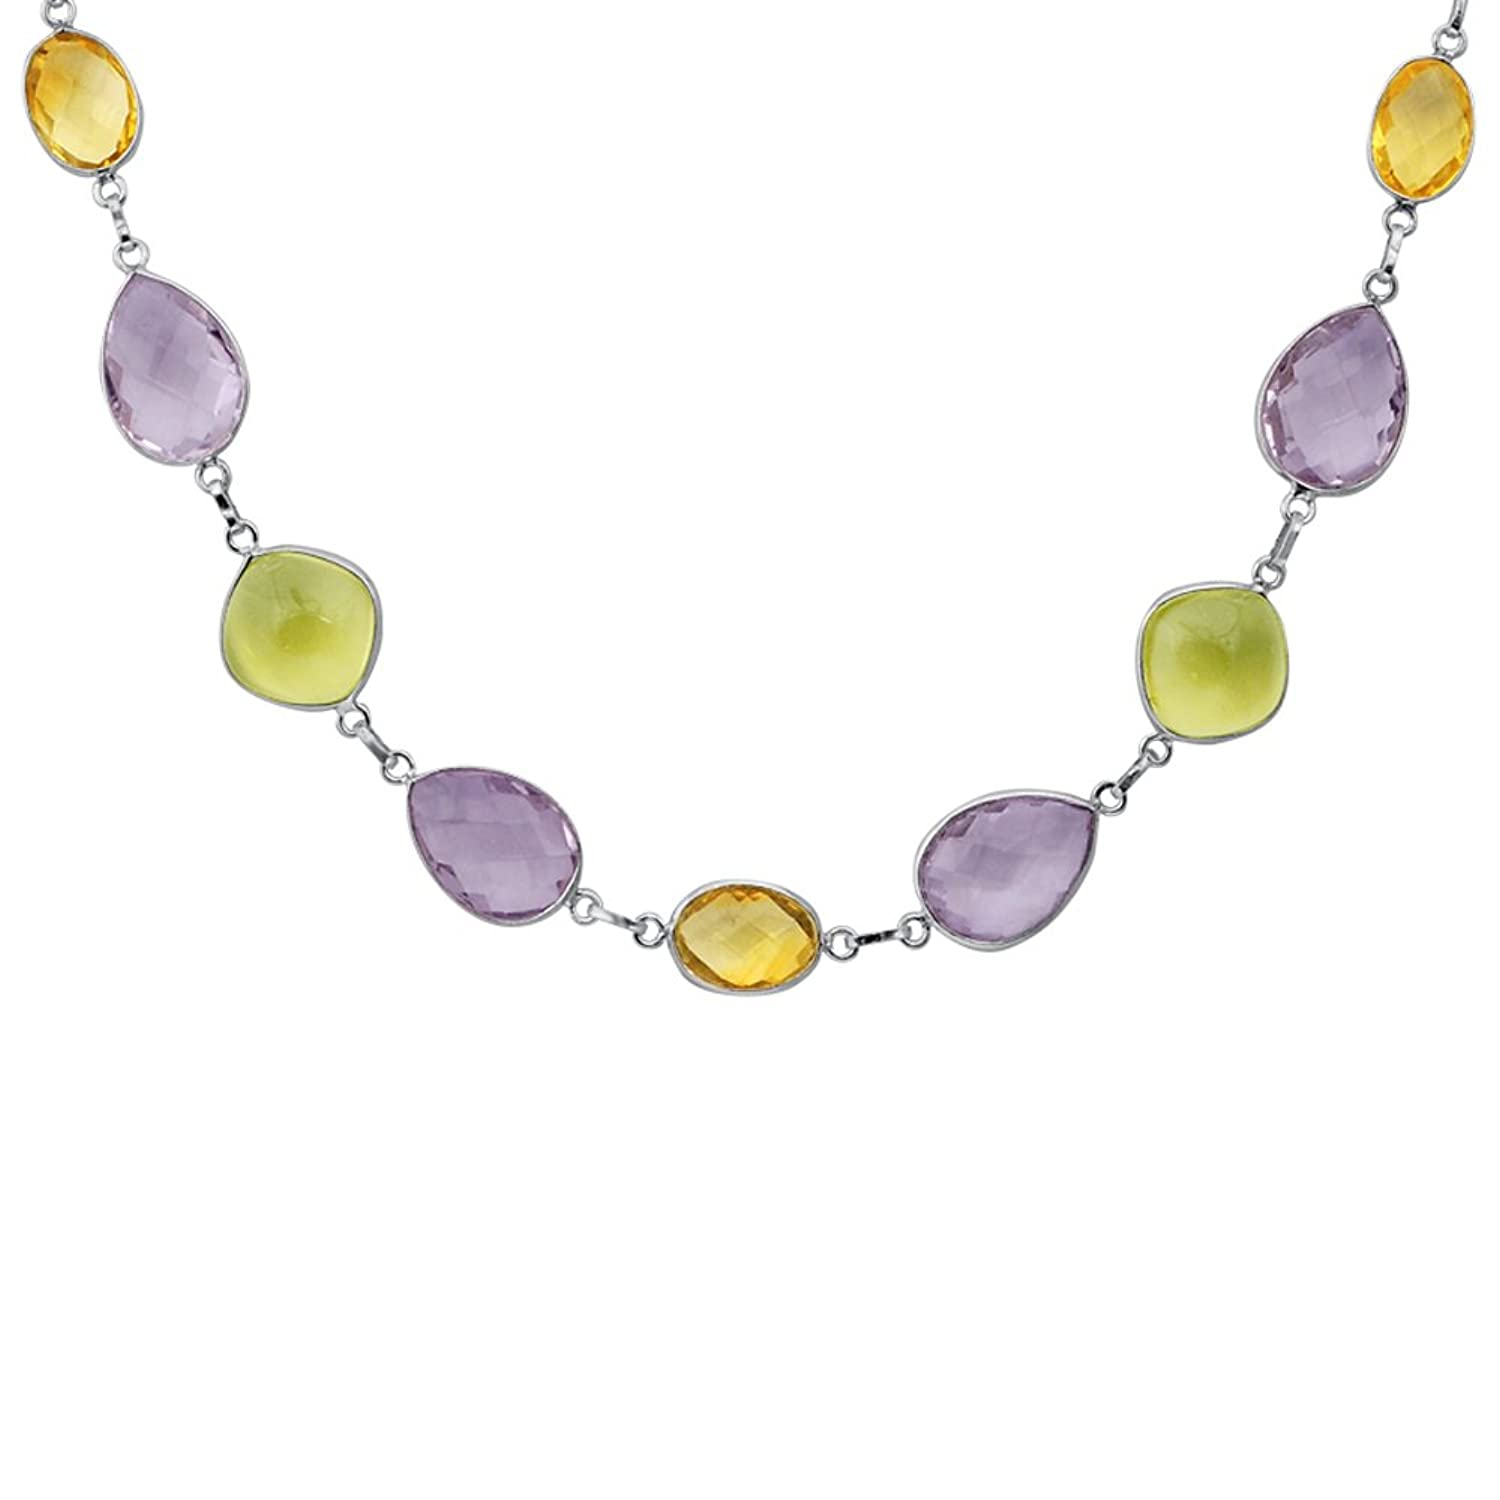 95 Ct Citrine Amethyst Lemon Quartz Solid Sterling Natural Golden Orange 13ct Silver Statement Necklace Jewelry